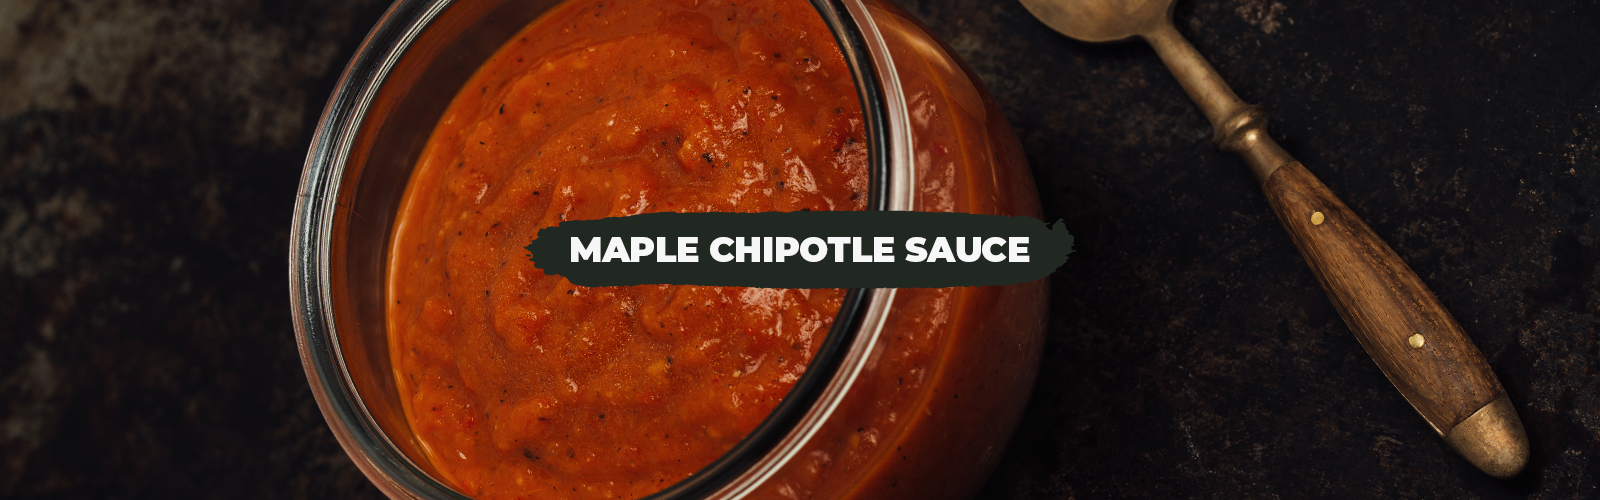 Maple Chipotle Sauce